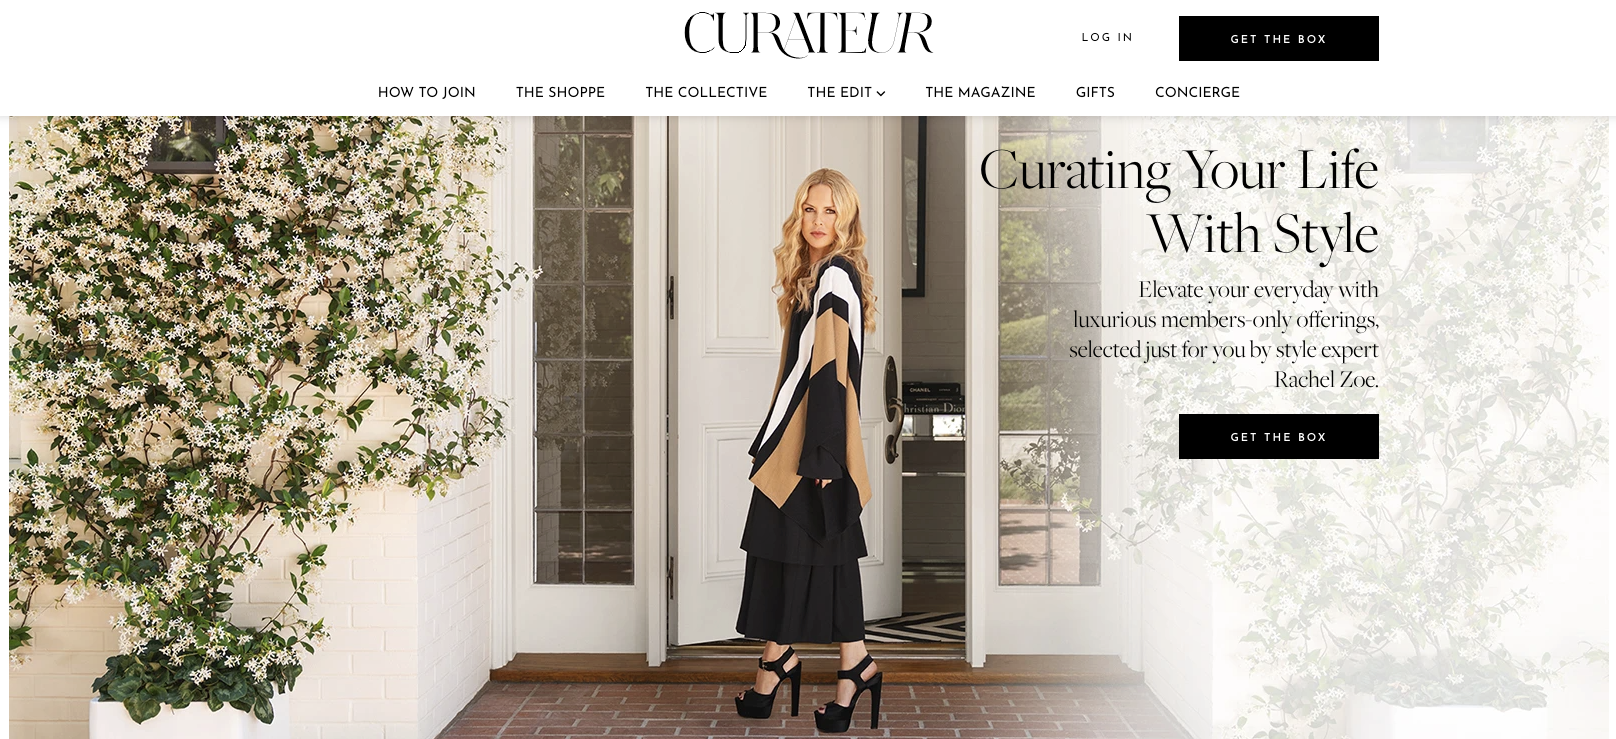 Curateur offers early access to the latest fashions.